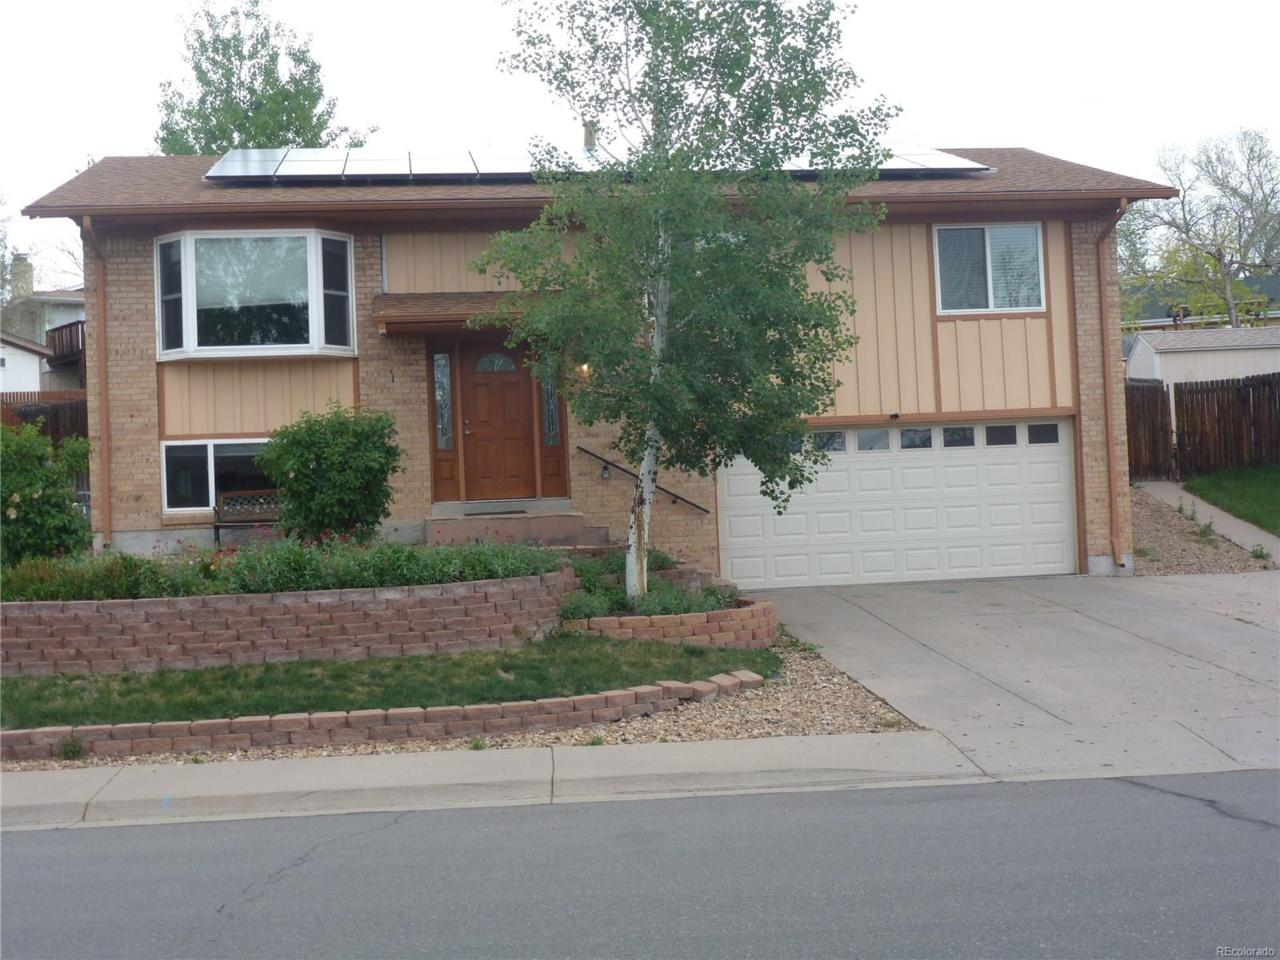 13041 W Warren Avenue, Lakewood, CO 80228 (MLS #8370816) :: 8z Real Estate